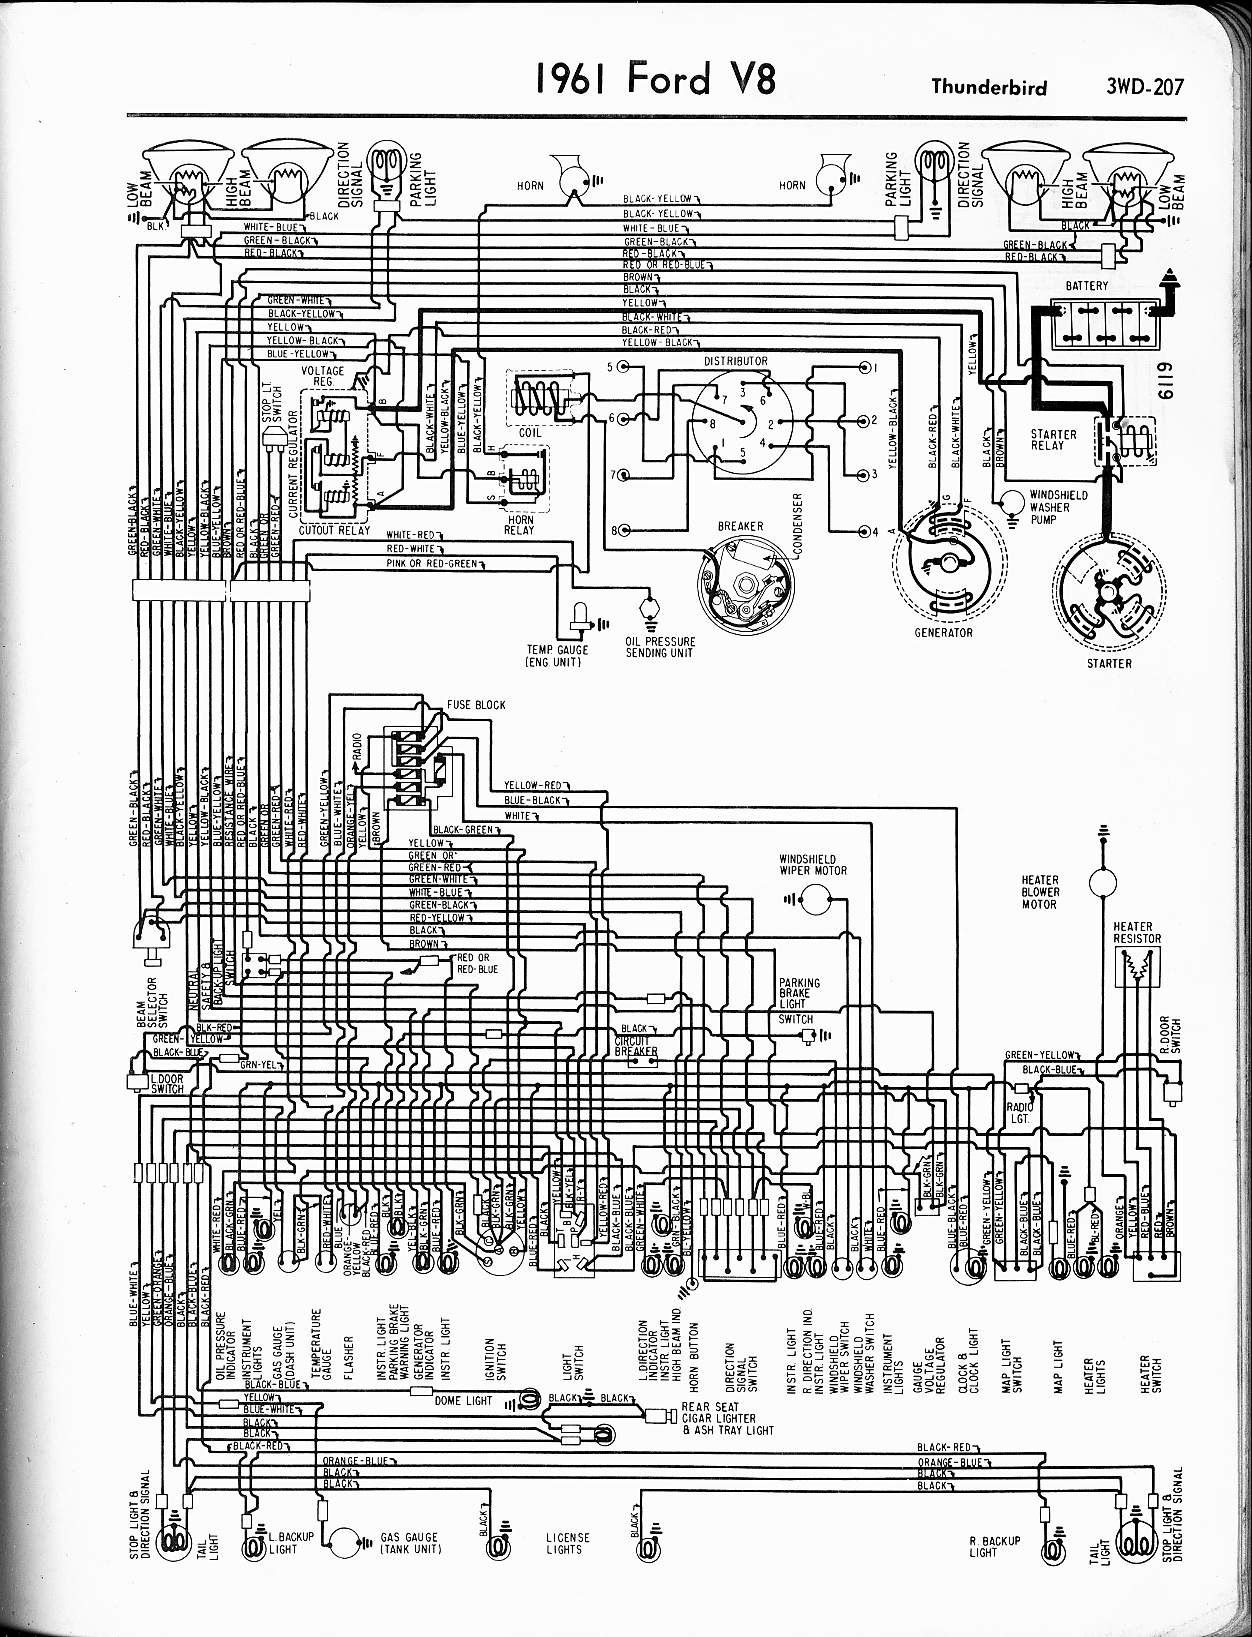 1955 ford fairlane wiring diagram wiring diagram 1962 ford fairlane wiring diagram (epub